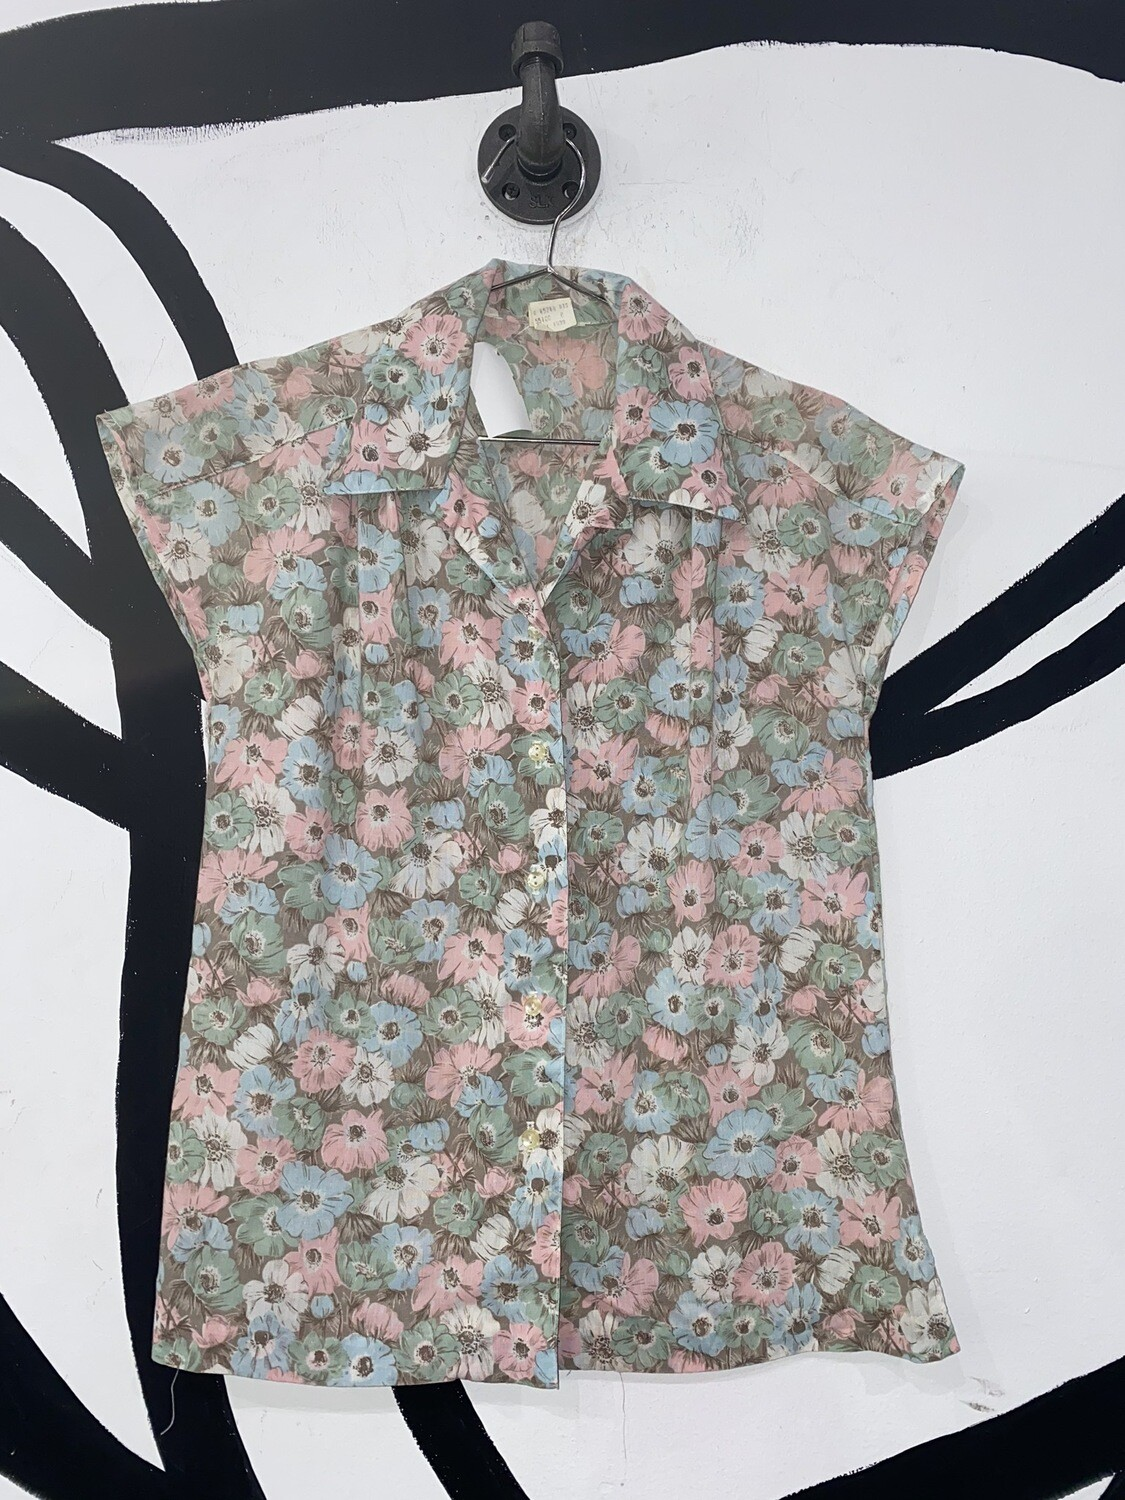 Women's Sleeveless Floral Button Up Blouse-Size 8